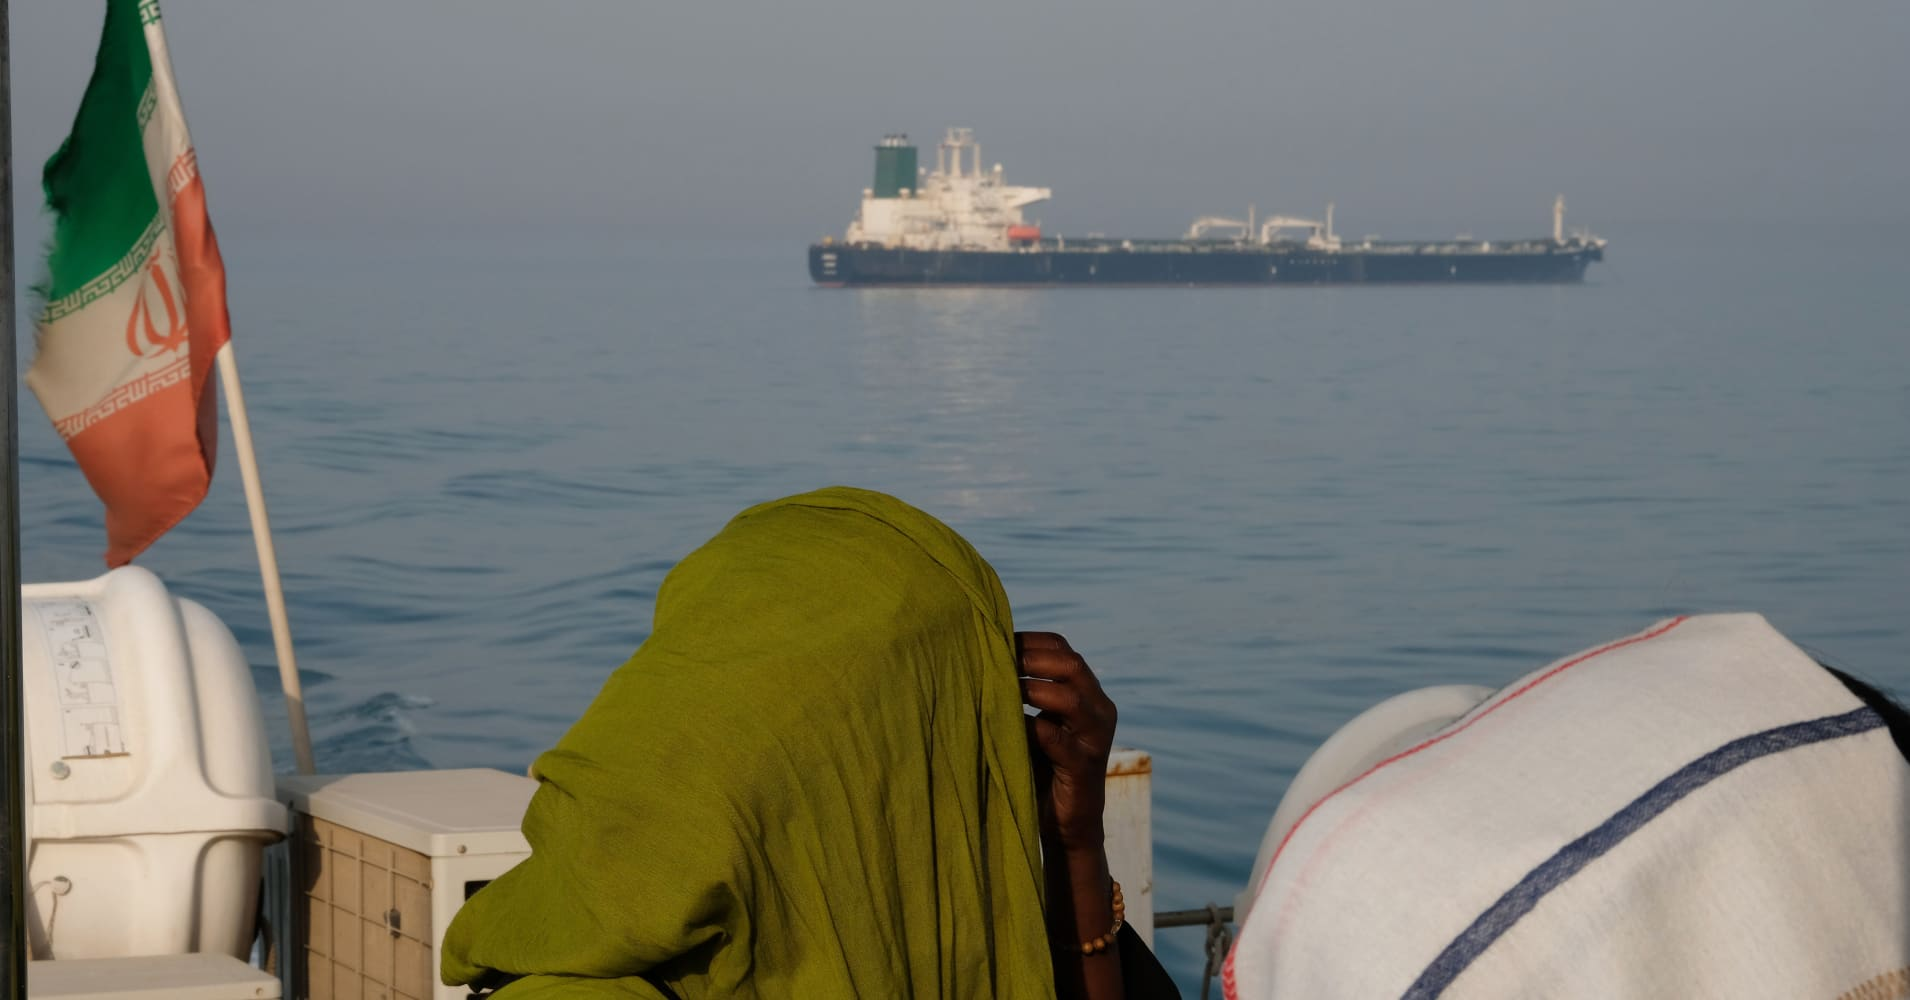 Iran oil sanctions: Strait of Hormuz in focus as oil prices rise